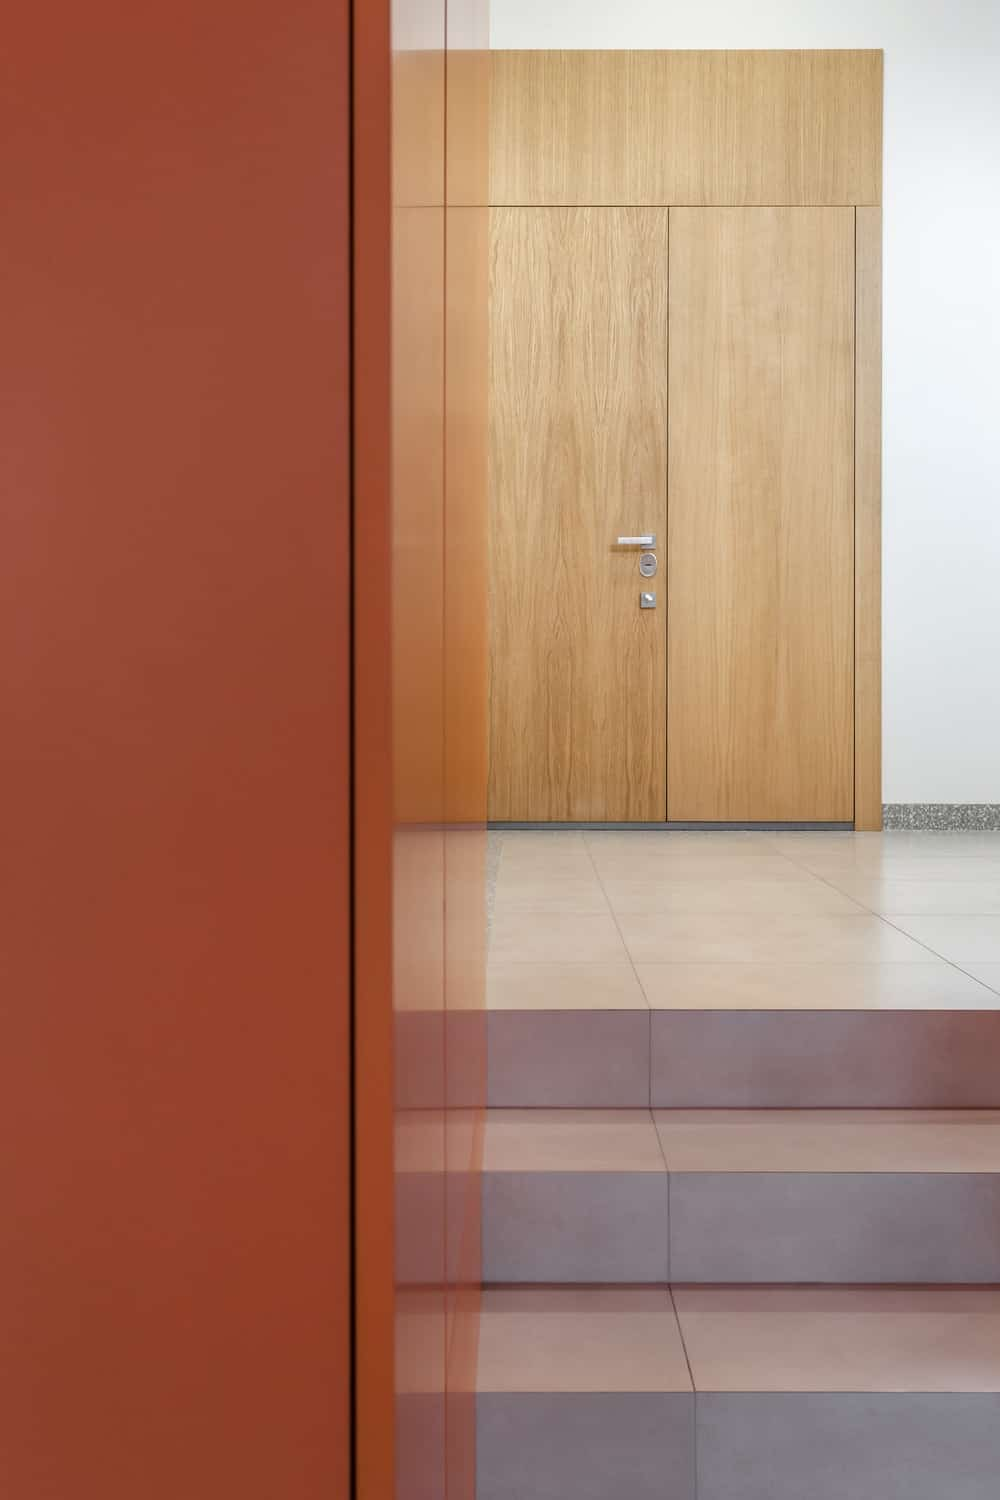 Upon entry of the house, you are welcomed by this simple foyer with a wide wooden main door.